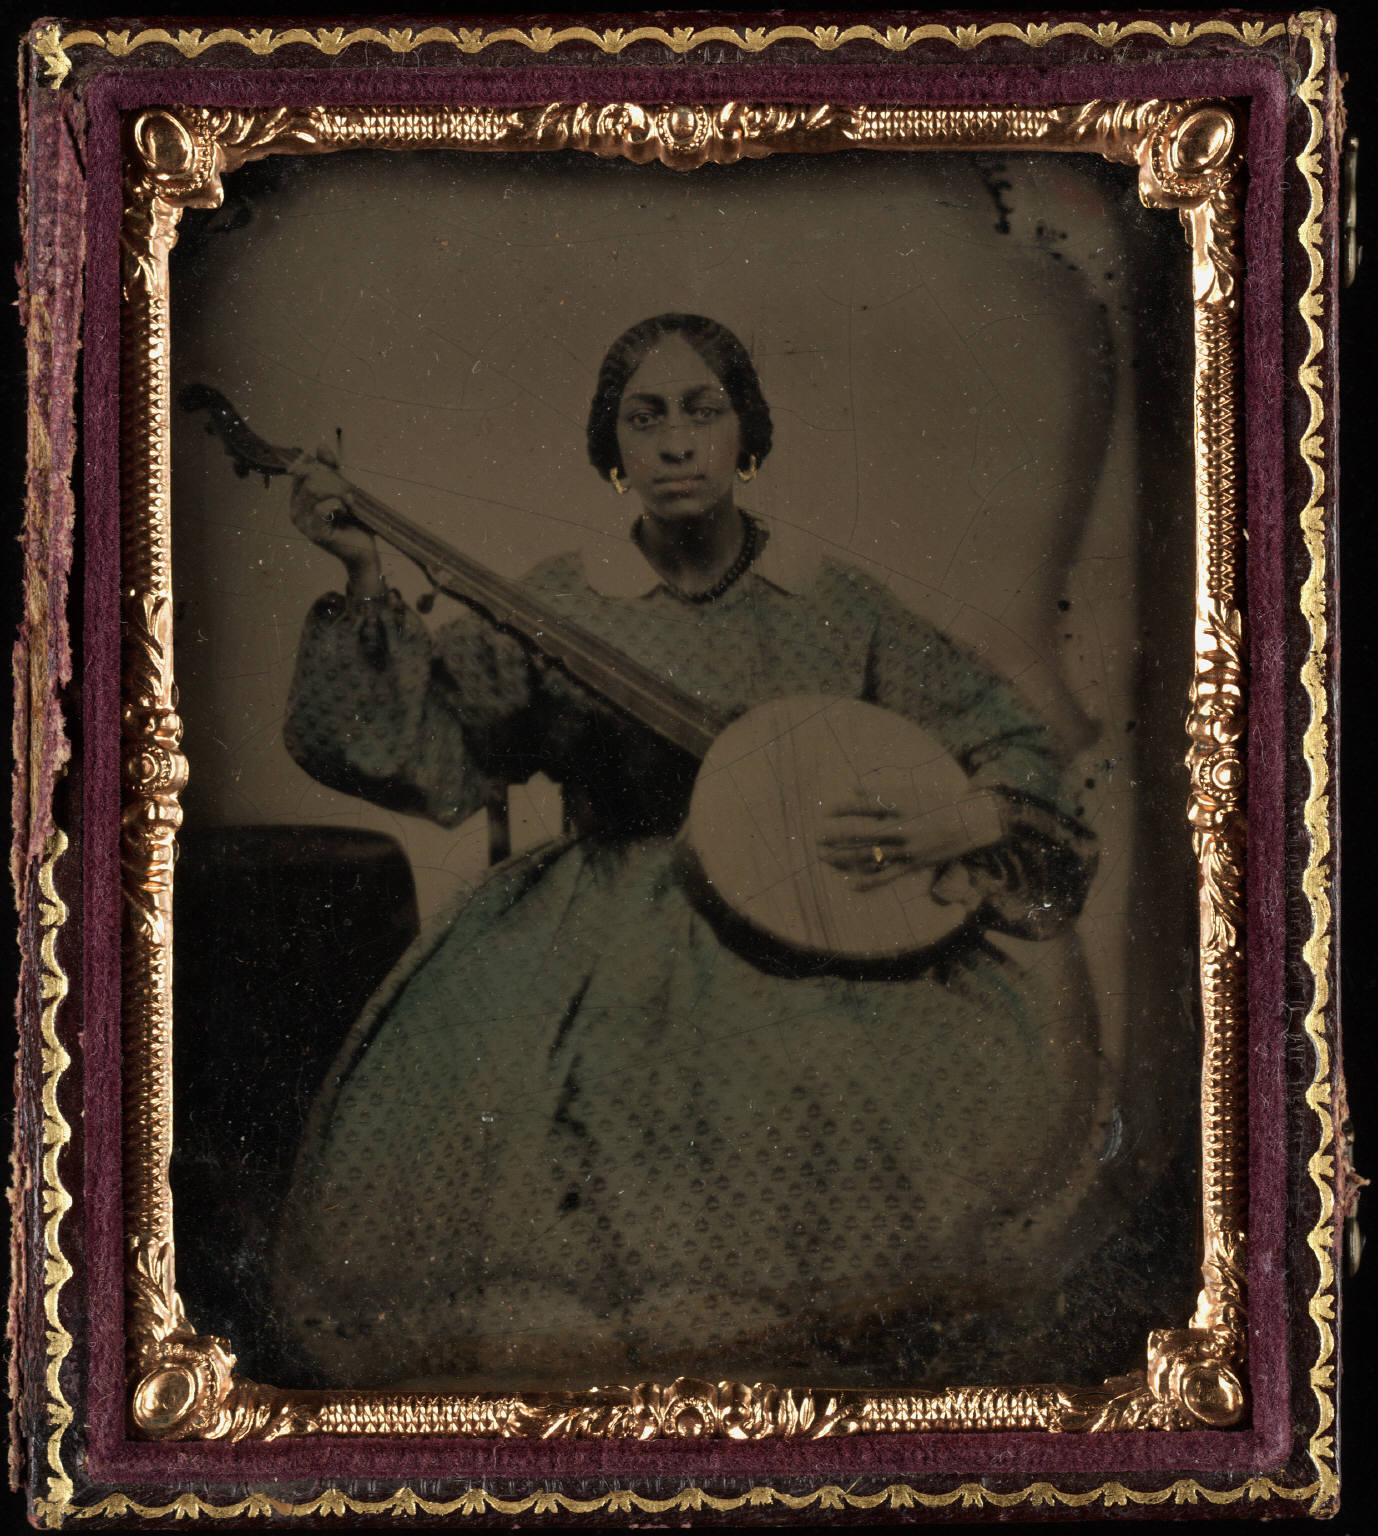 Caption: Portrait of a young black woman, seated, holding nine string banjo, Credit: Yale Collection of American Literature, Beinecke Rare Book and Manuscript Library